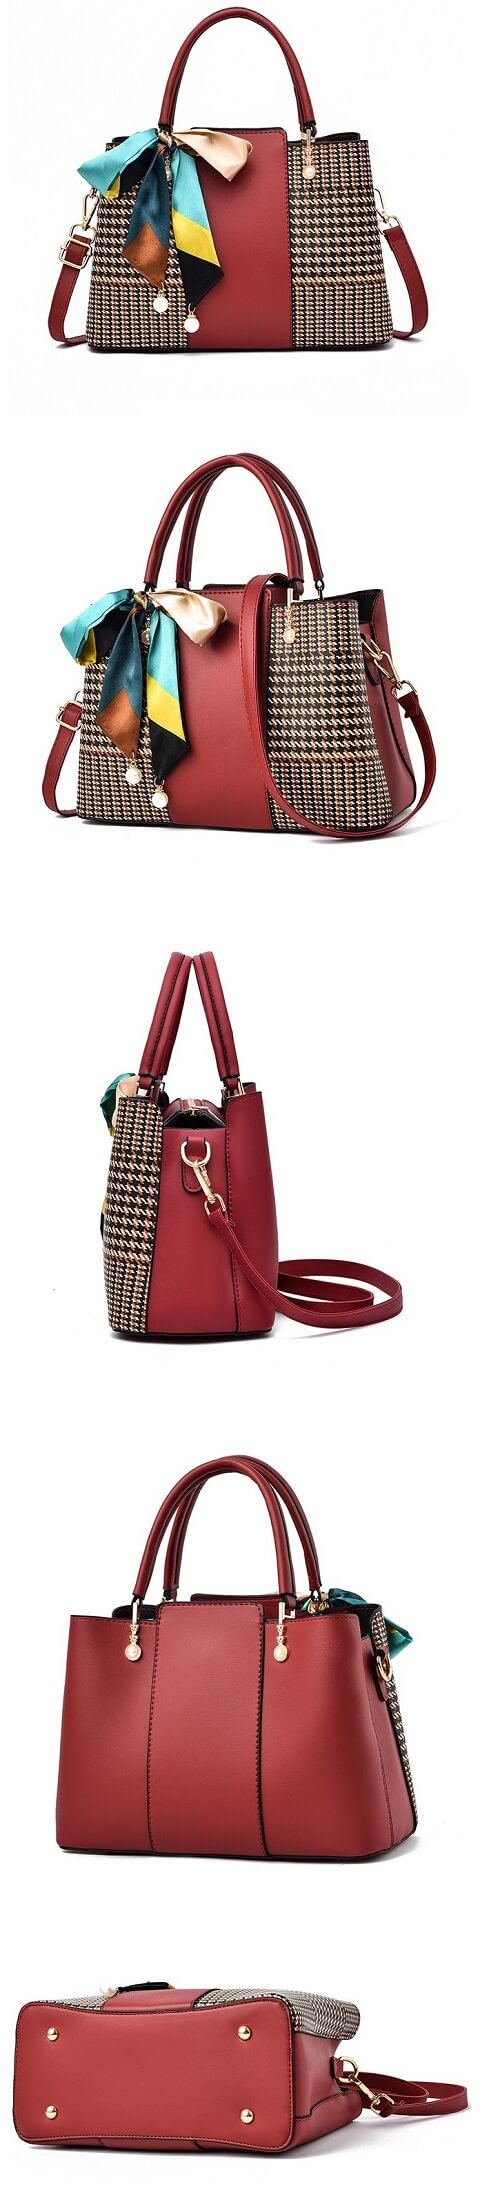 Lorelai Sosa handbag can be transformed from a crossbody bag to a top-handle bag to suit your ensembles.